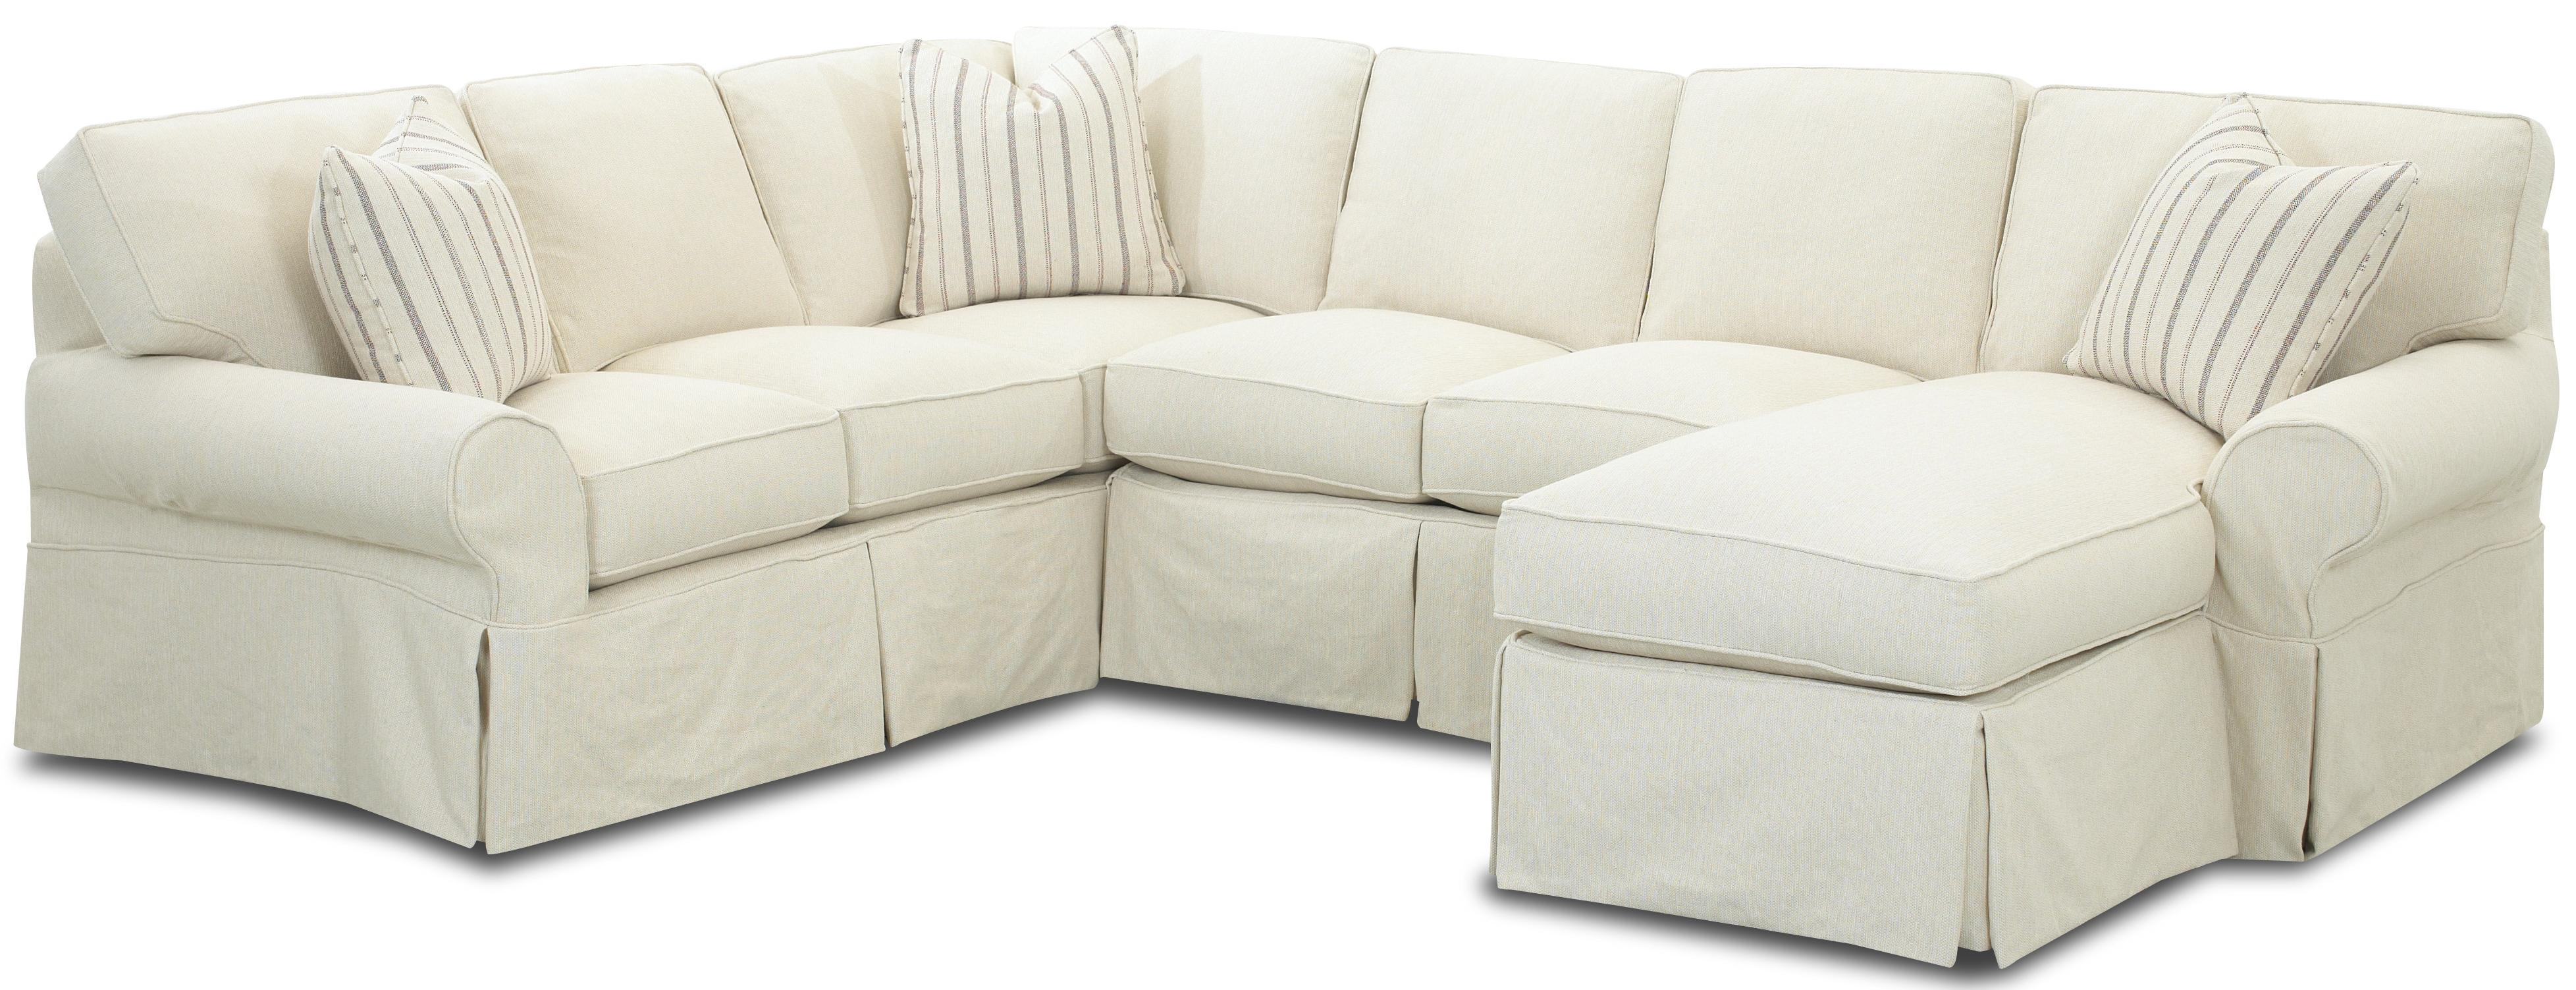 Beautiful couch covers with cushions for sectionals  for living room with furniture covers for sectionals